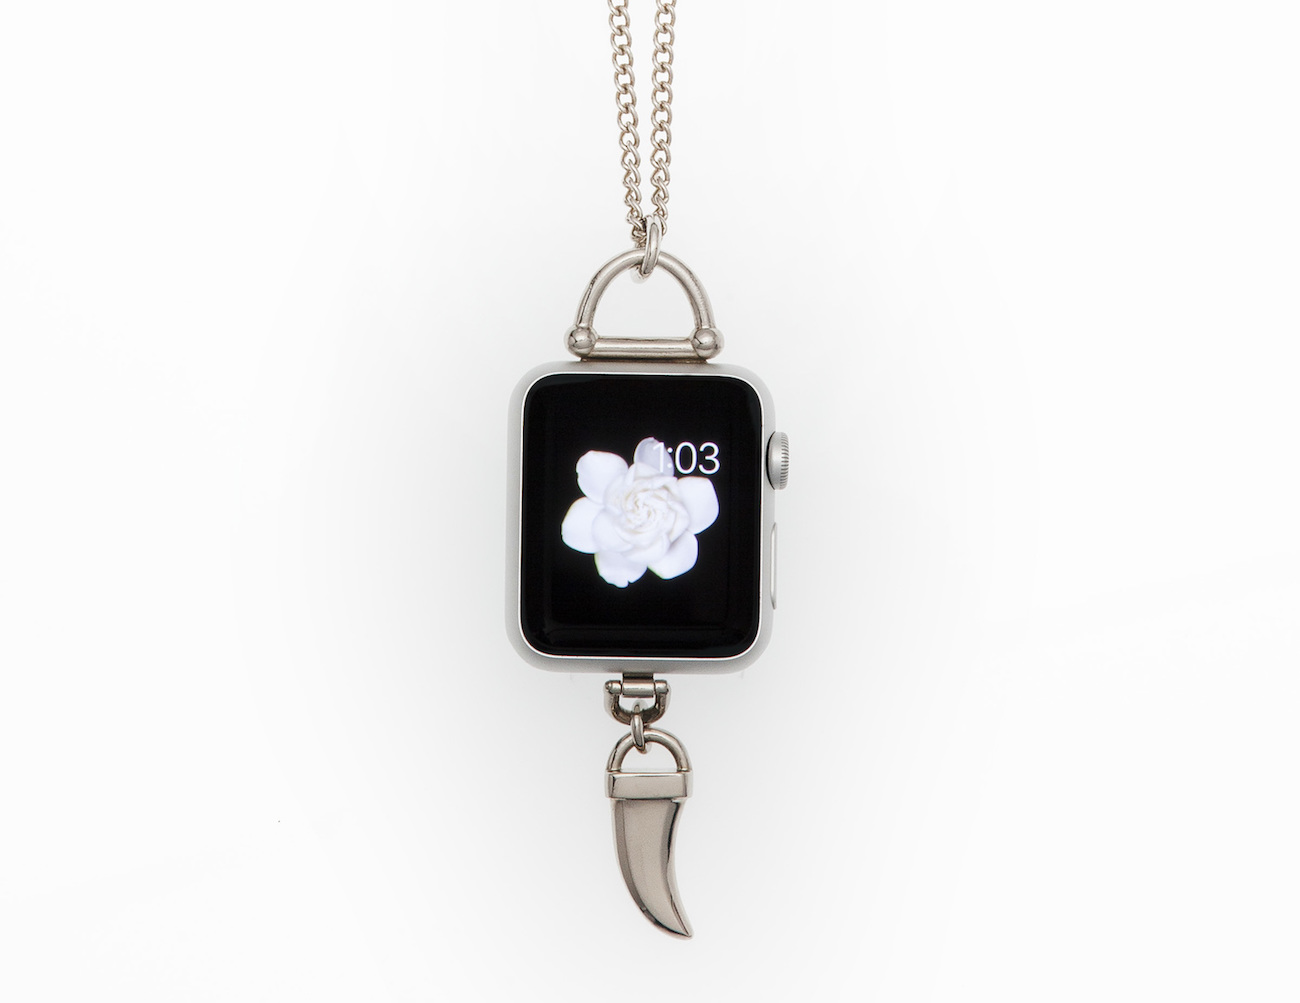 Horn Charm Pendant Necklace for Apple Watch by Bucardo